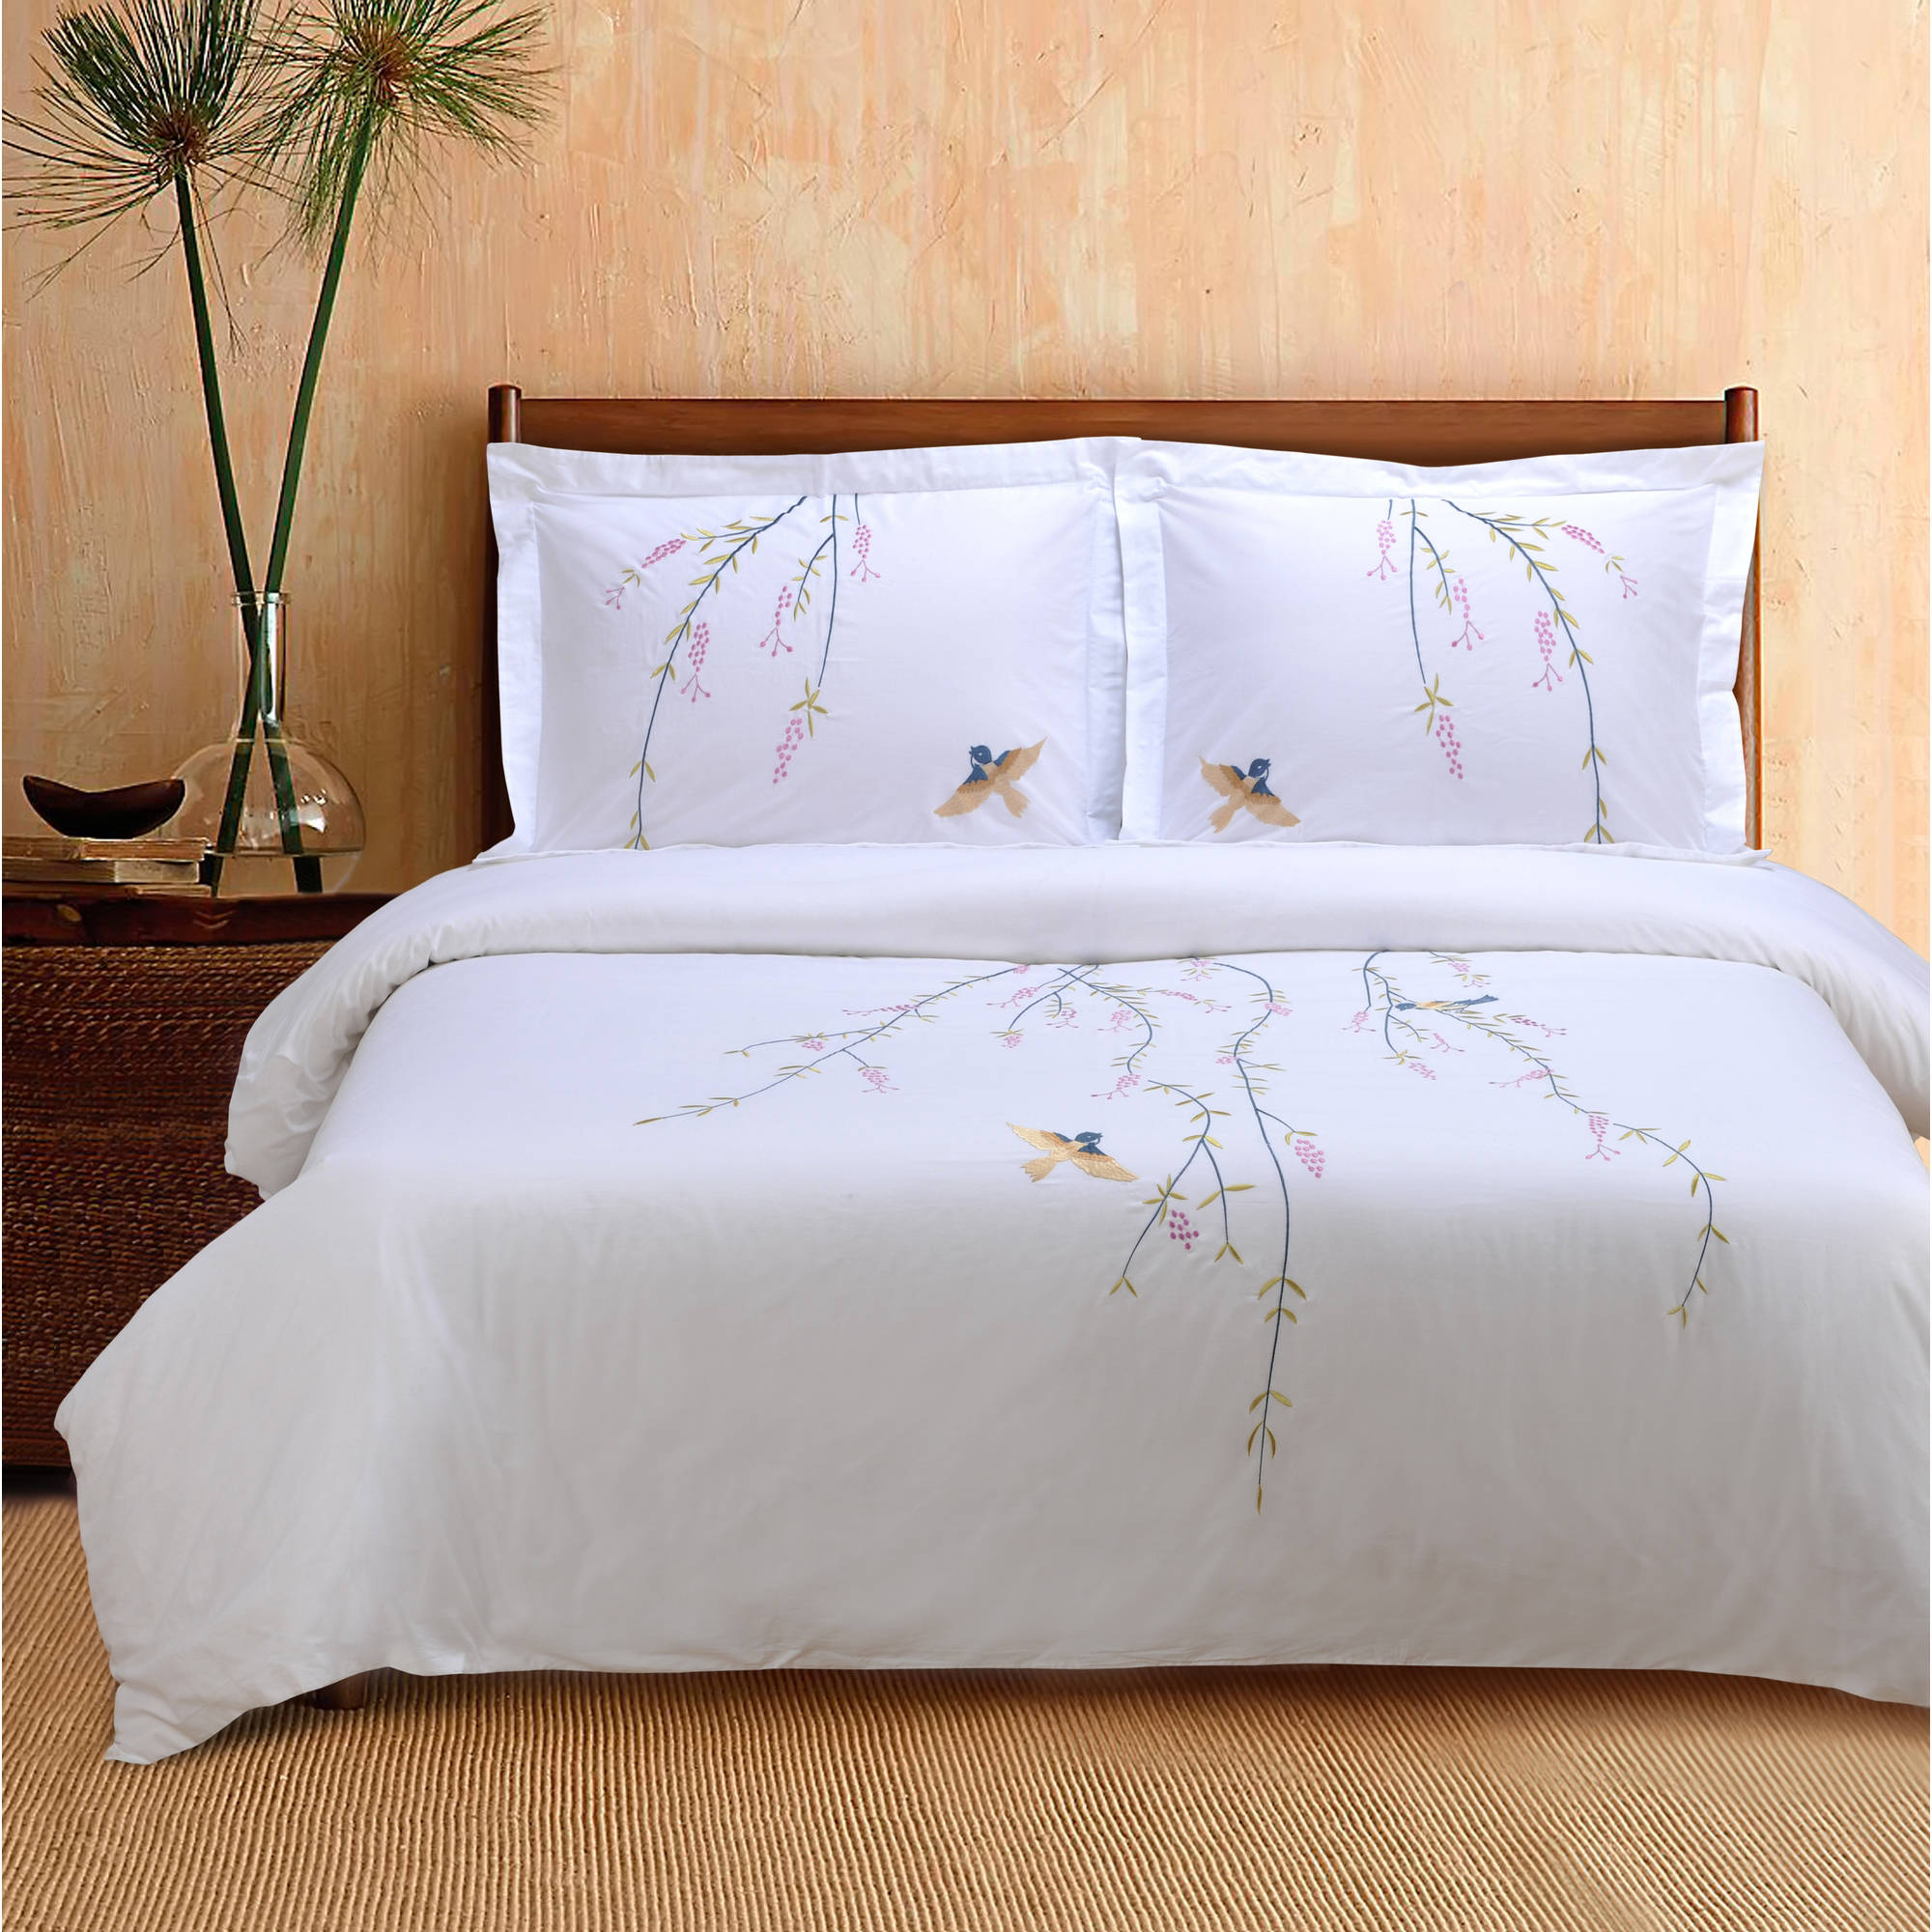 Superior Spring Premium Cotton Percale Embroidered 3-Piece Duvet Cover Set